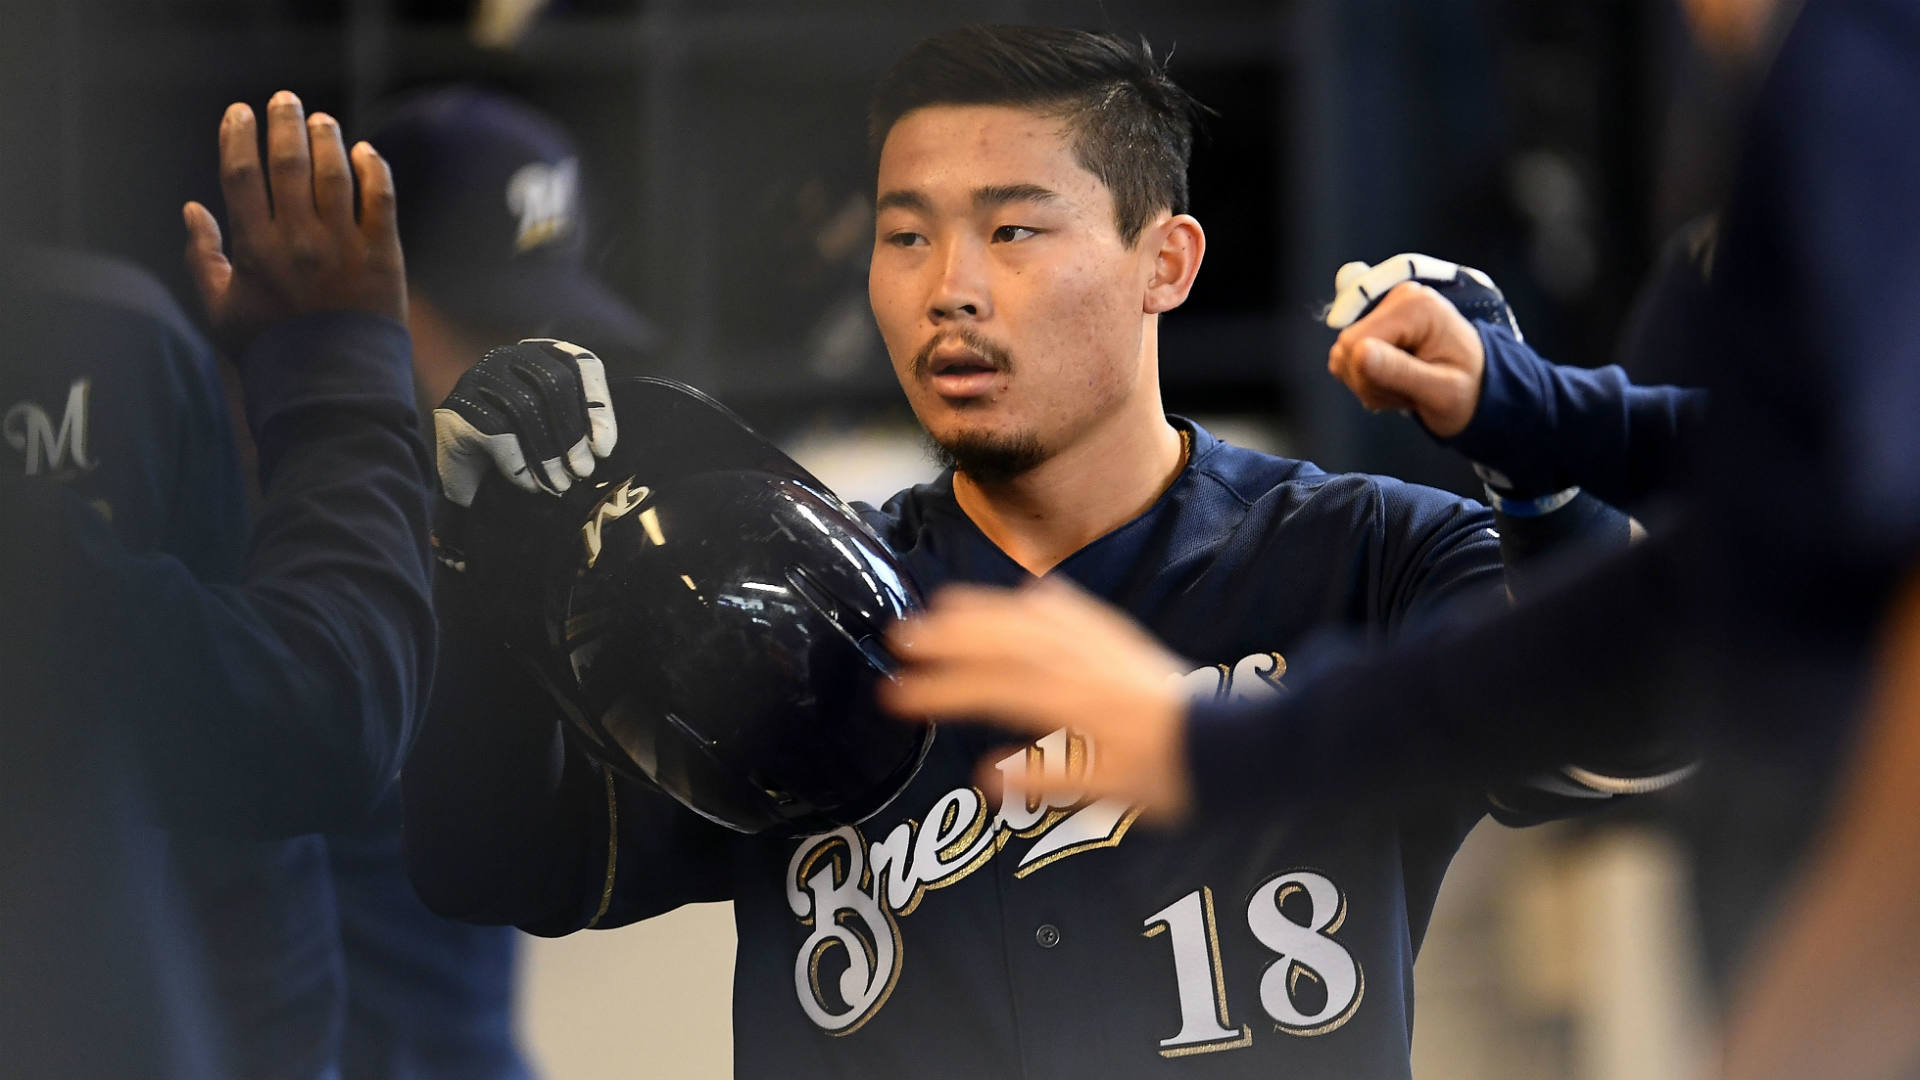 Keston Hiura has the poise Brewers need for playoff push